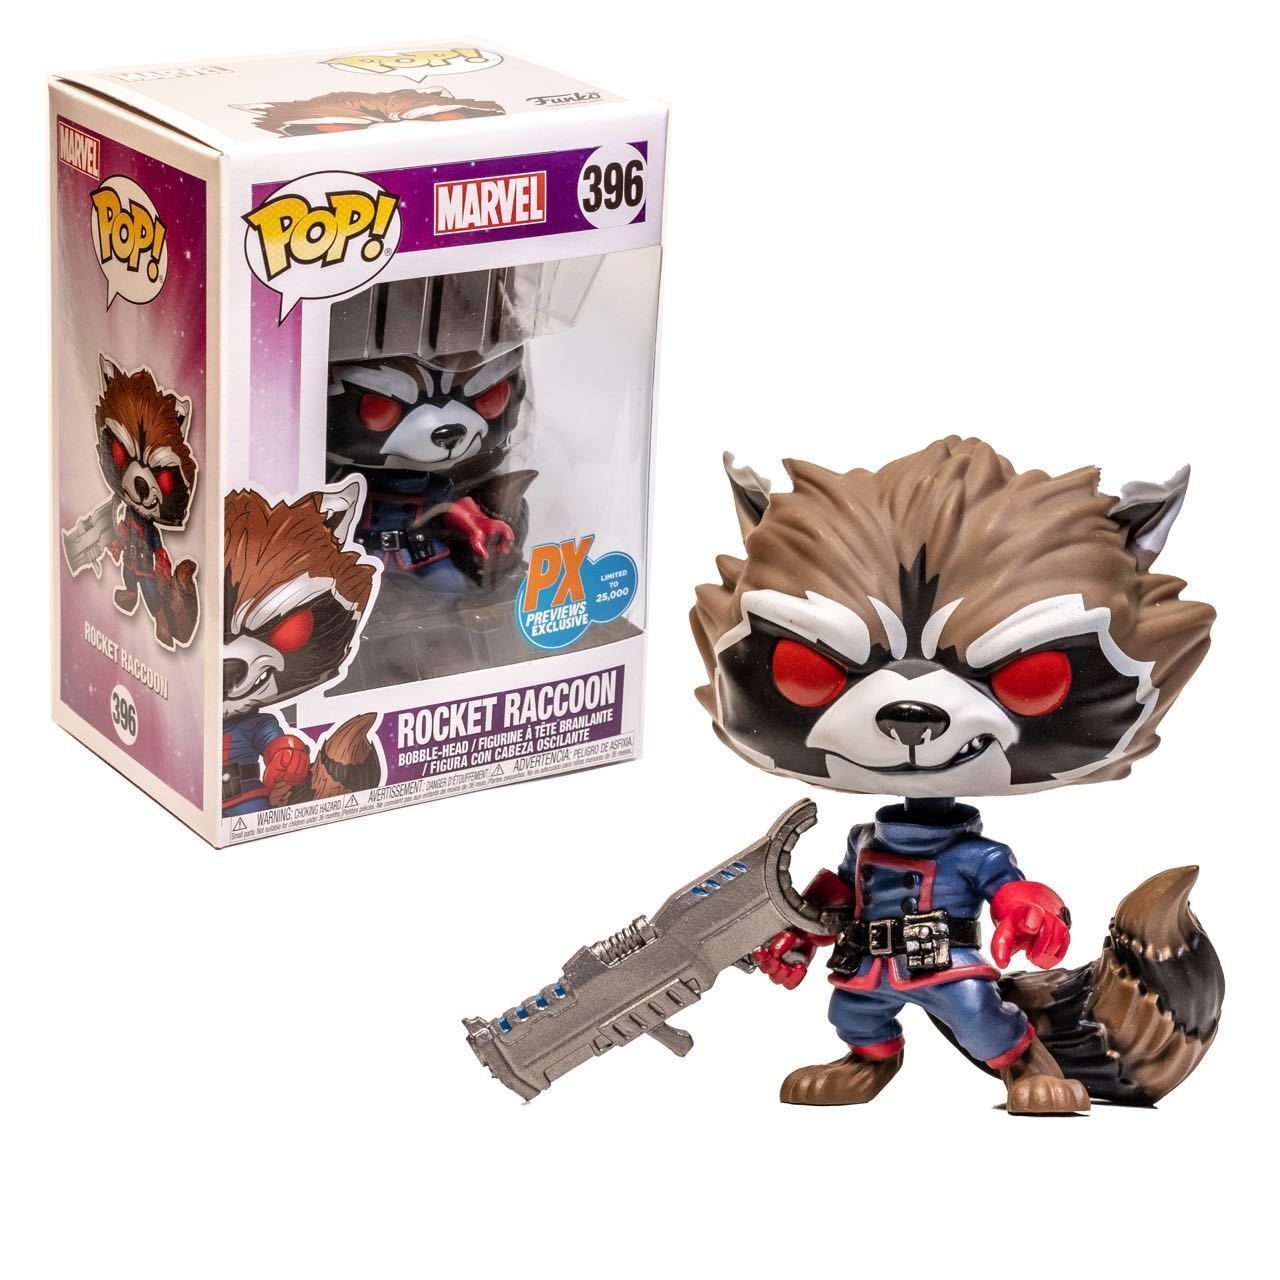 Funko Pop Marvel Gotg Comic Rocket Raccoon Classic Px 4 Inch Vinyl Guardians Of The Galaxy Super Deluxe Figure Stock Photo